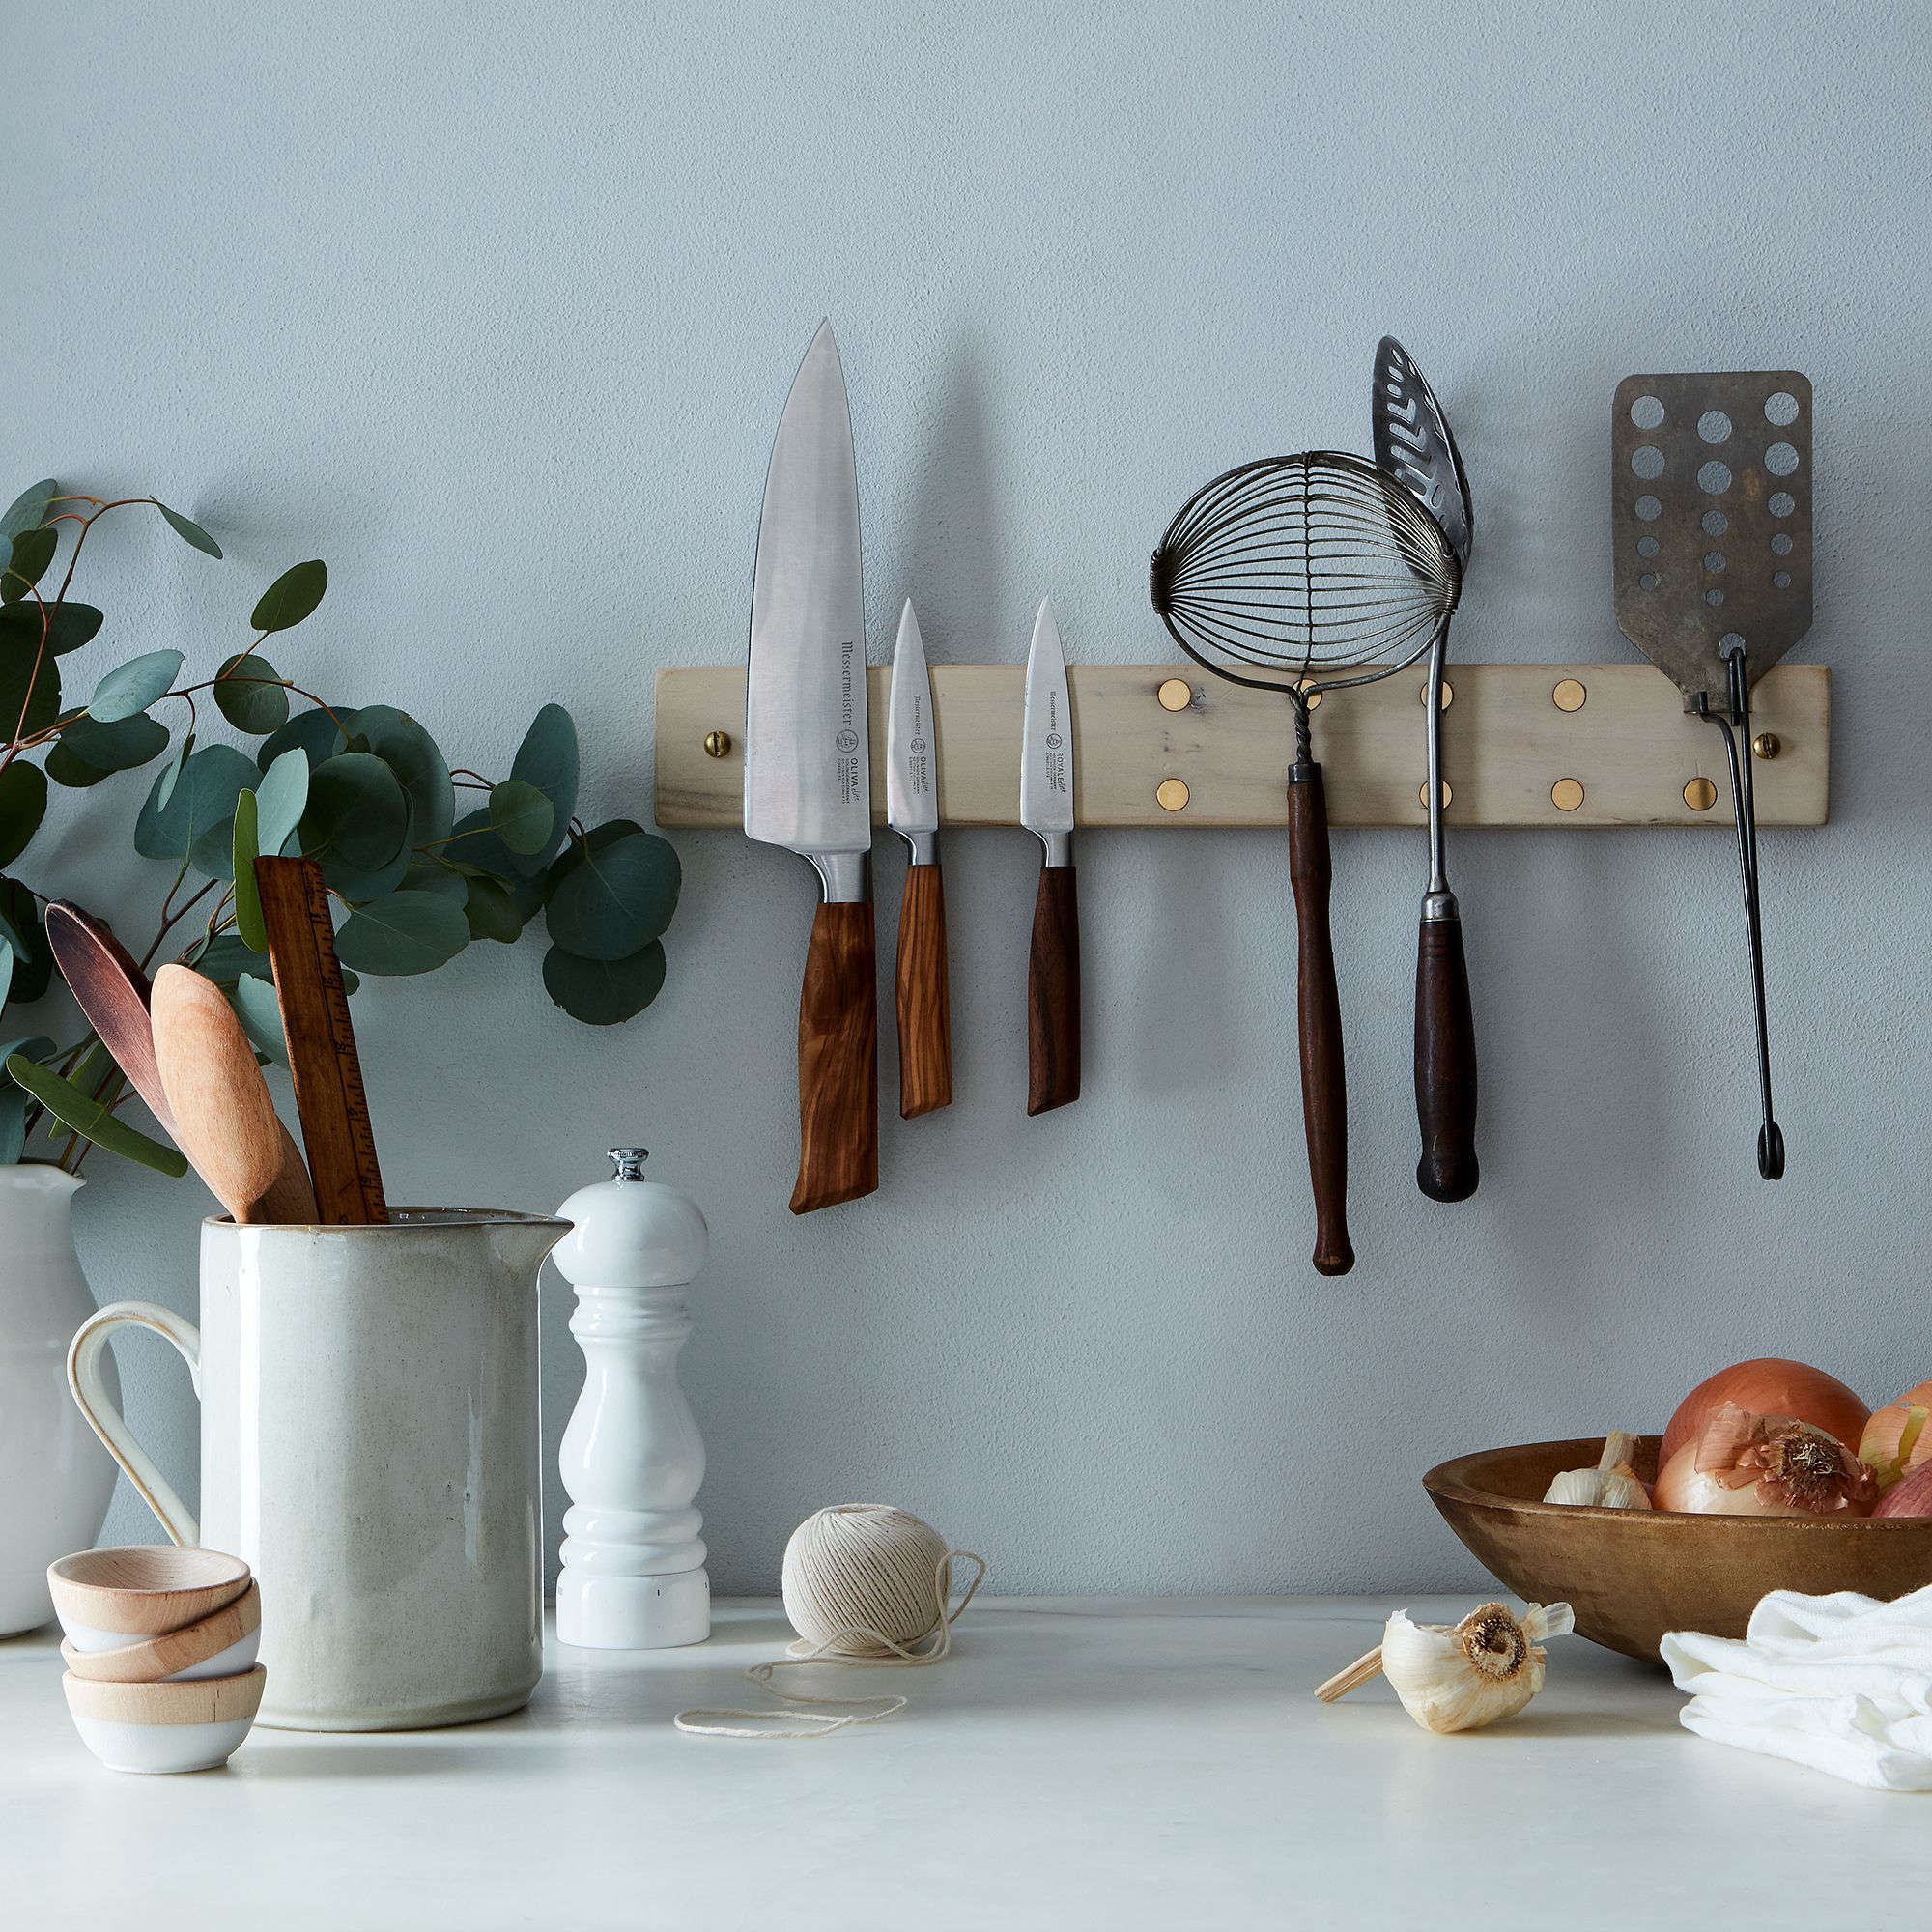 Peg & Awl Milk Paint Maple Brass Knife Grabber at Food52